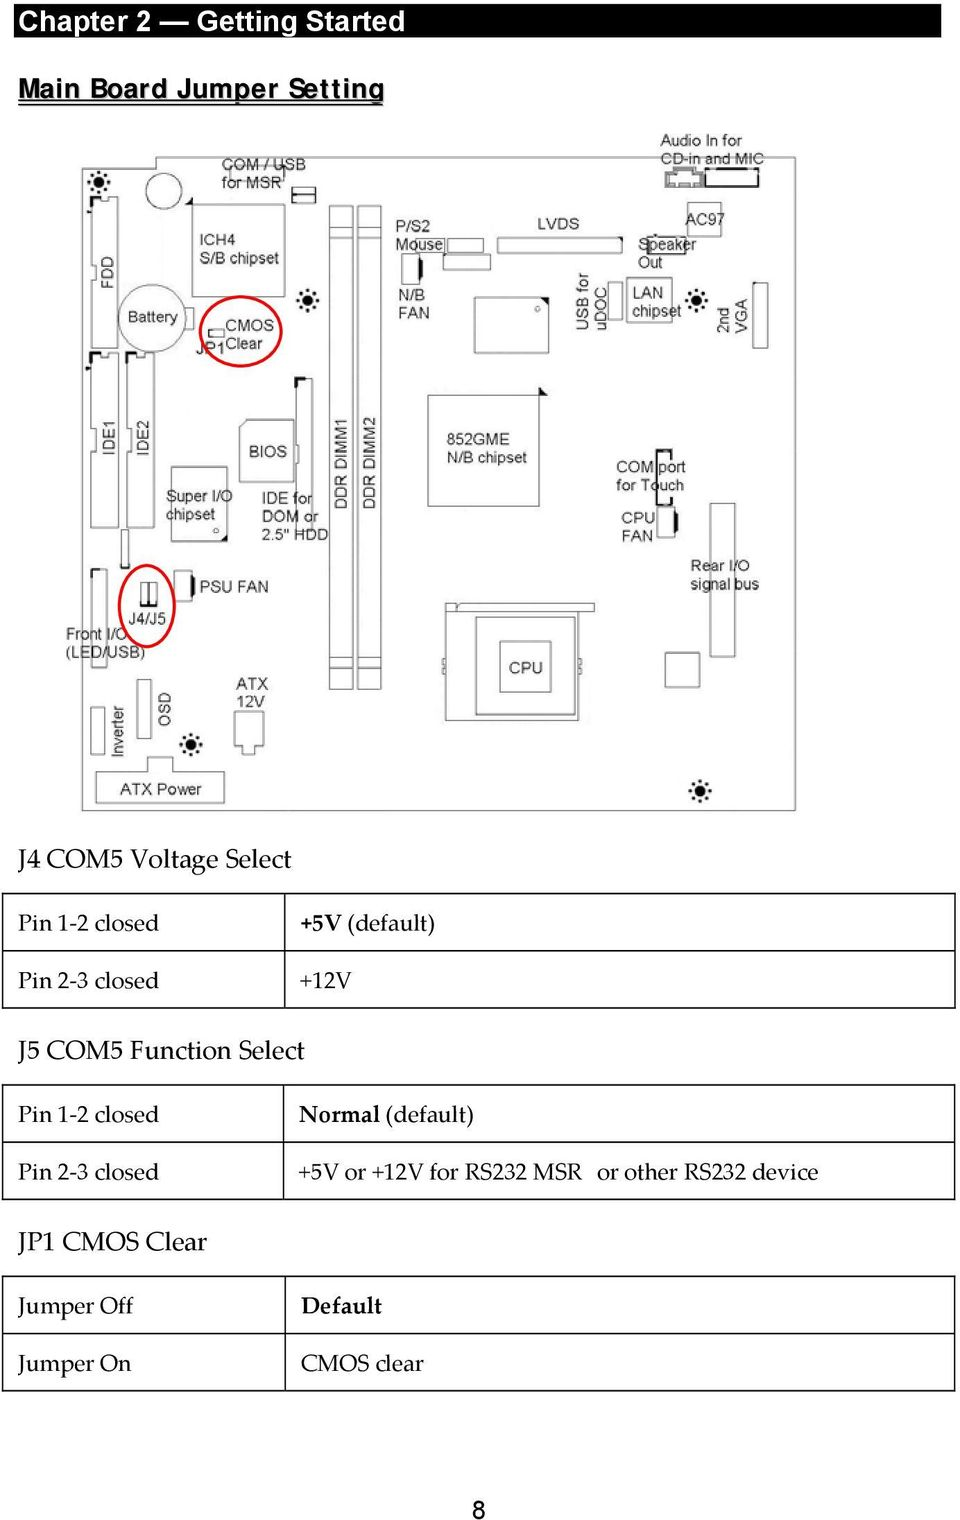 Pin 1-2 closed Pin 2-3 closed Normal (default) +5V or +12V for RS232 MSR